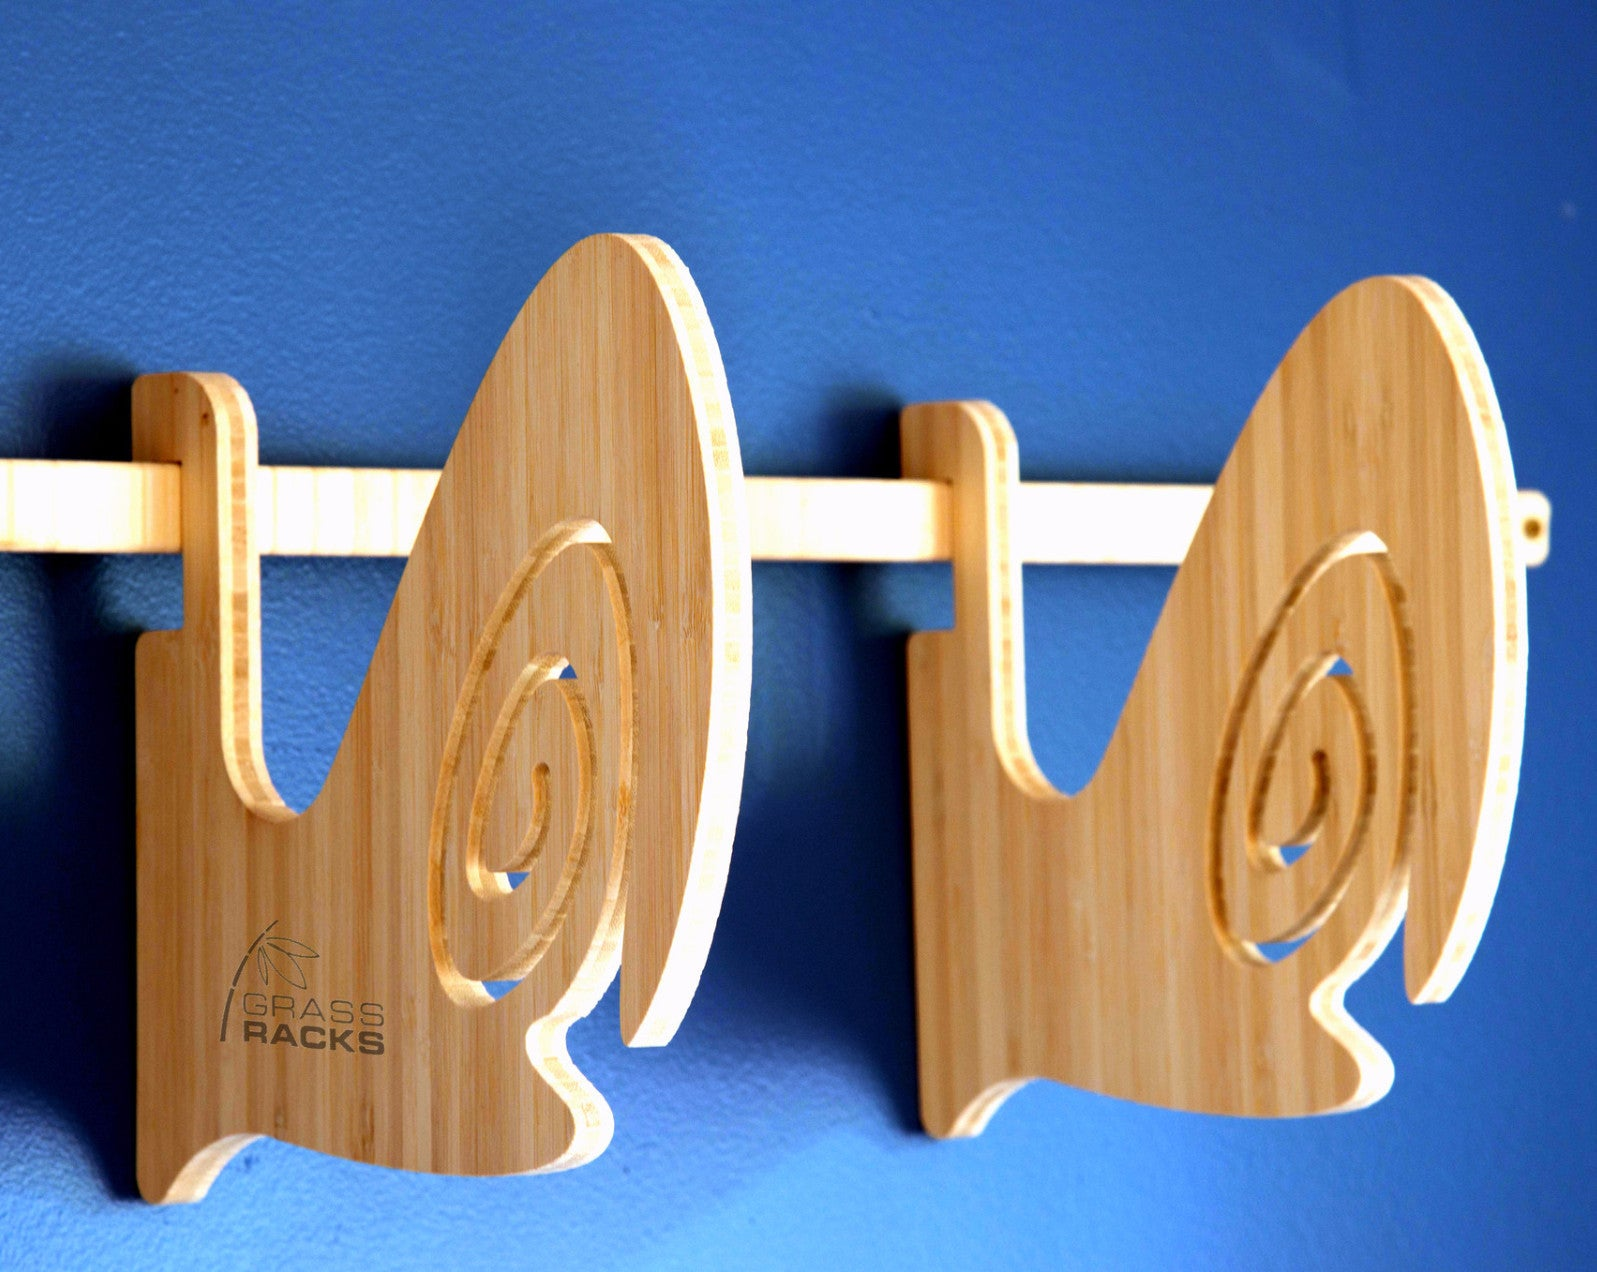 Surf Rack by Grassracks - Bamboo Wall Mount Surfboard Rack